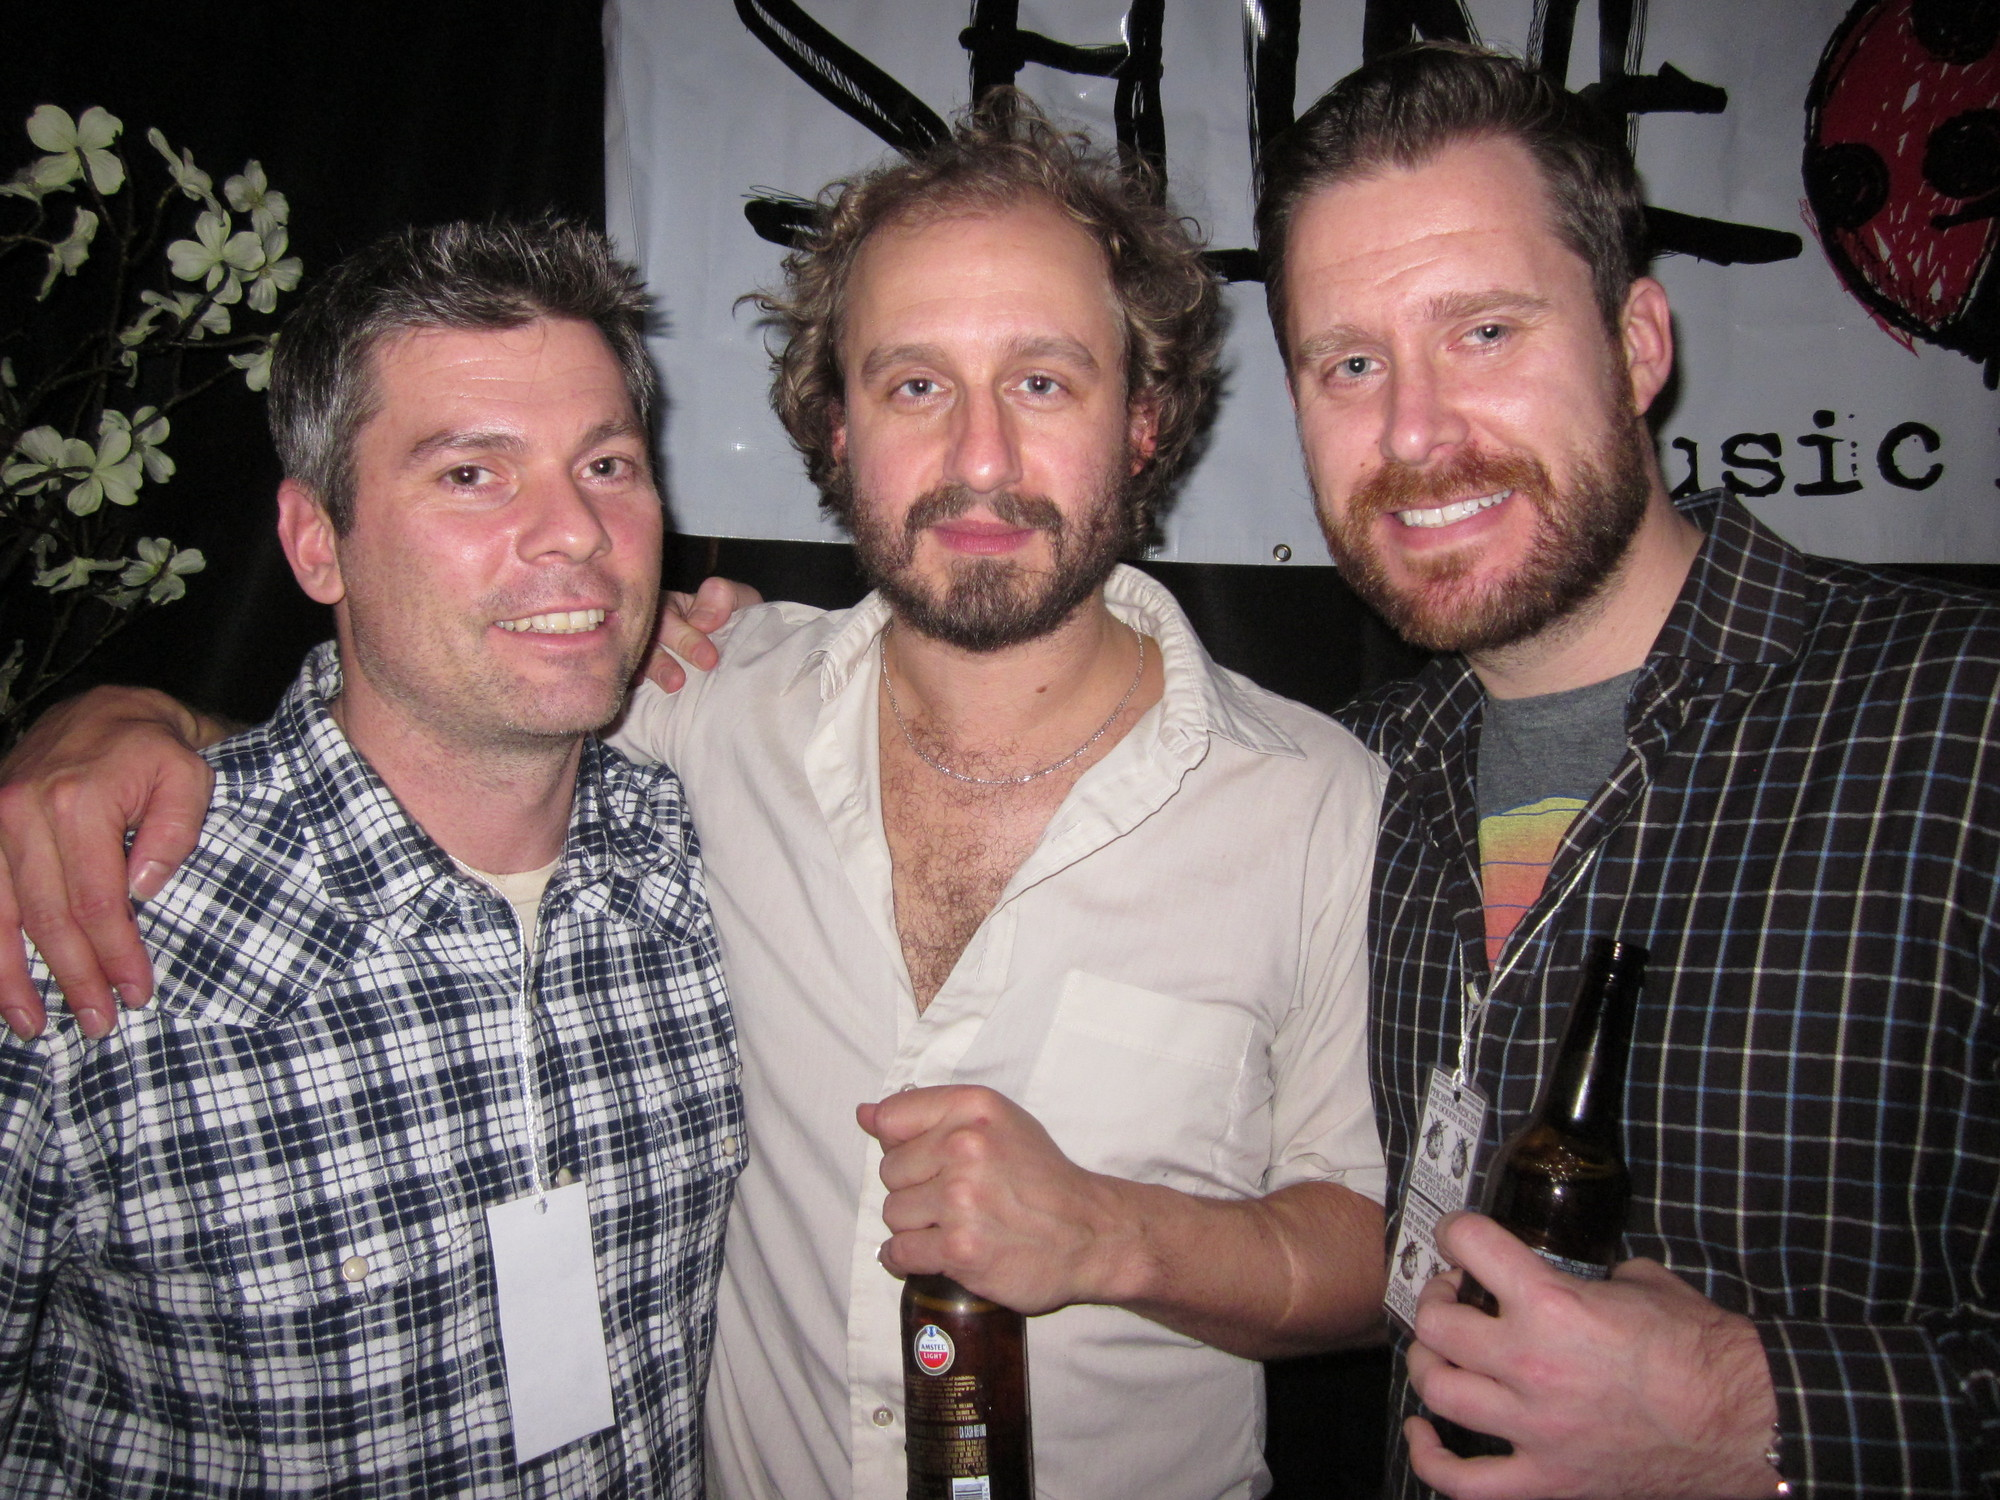 From left, Tommy Brull Foundation founder Martin Brull posed with Phosphorescent's Matthew Houck and fellow Brull Foundation volunteer Chuck Watson of Rockville Centre.